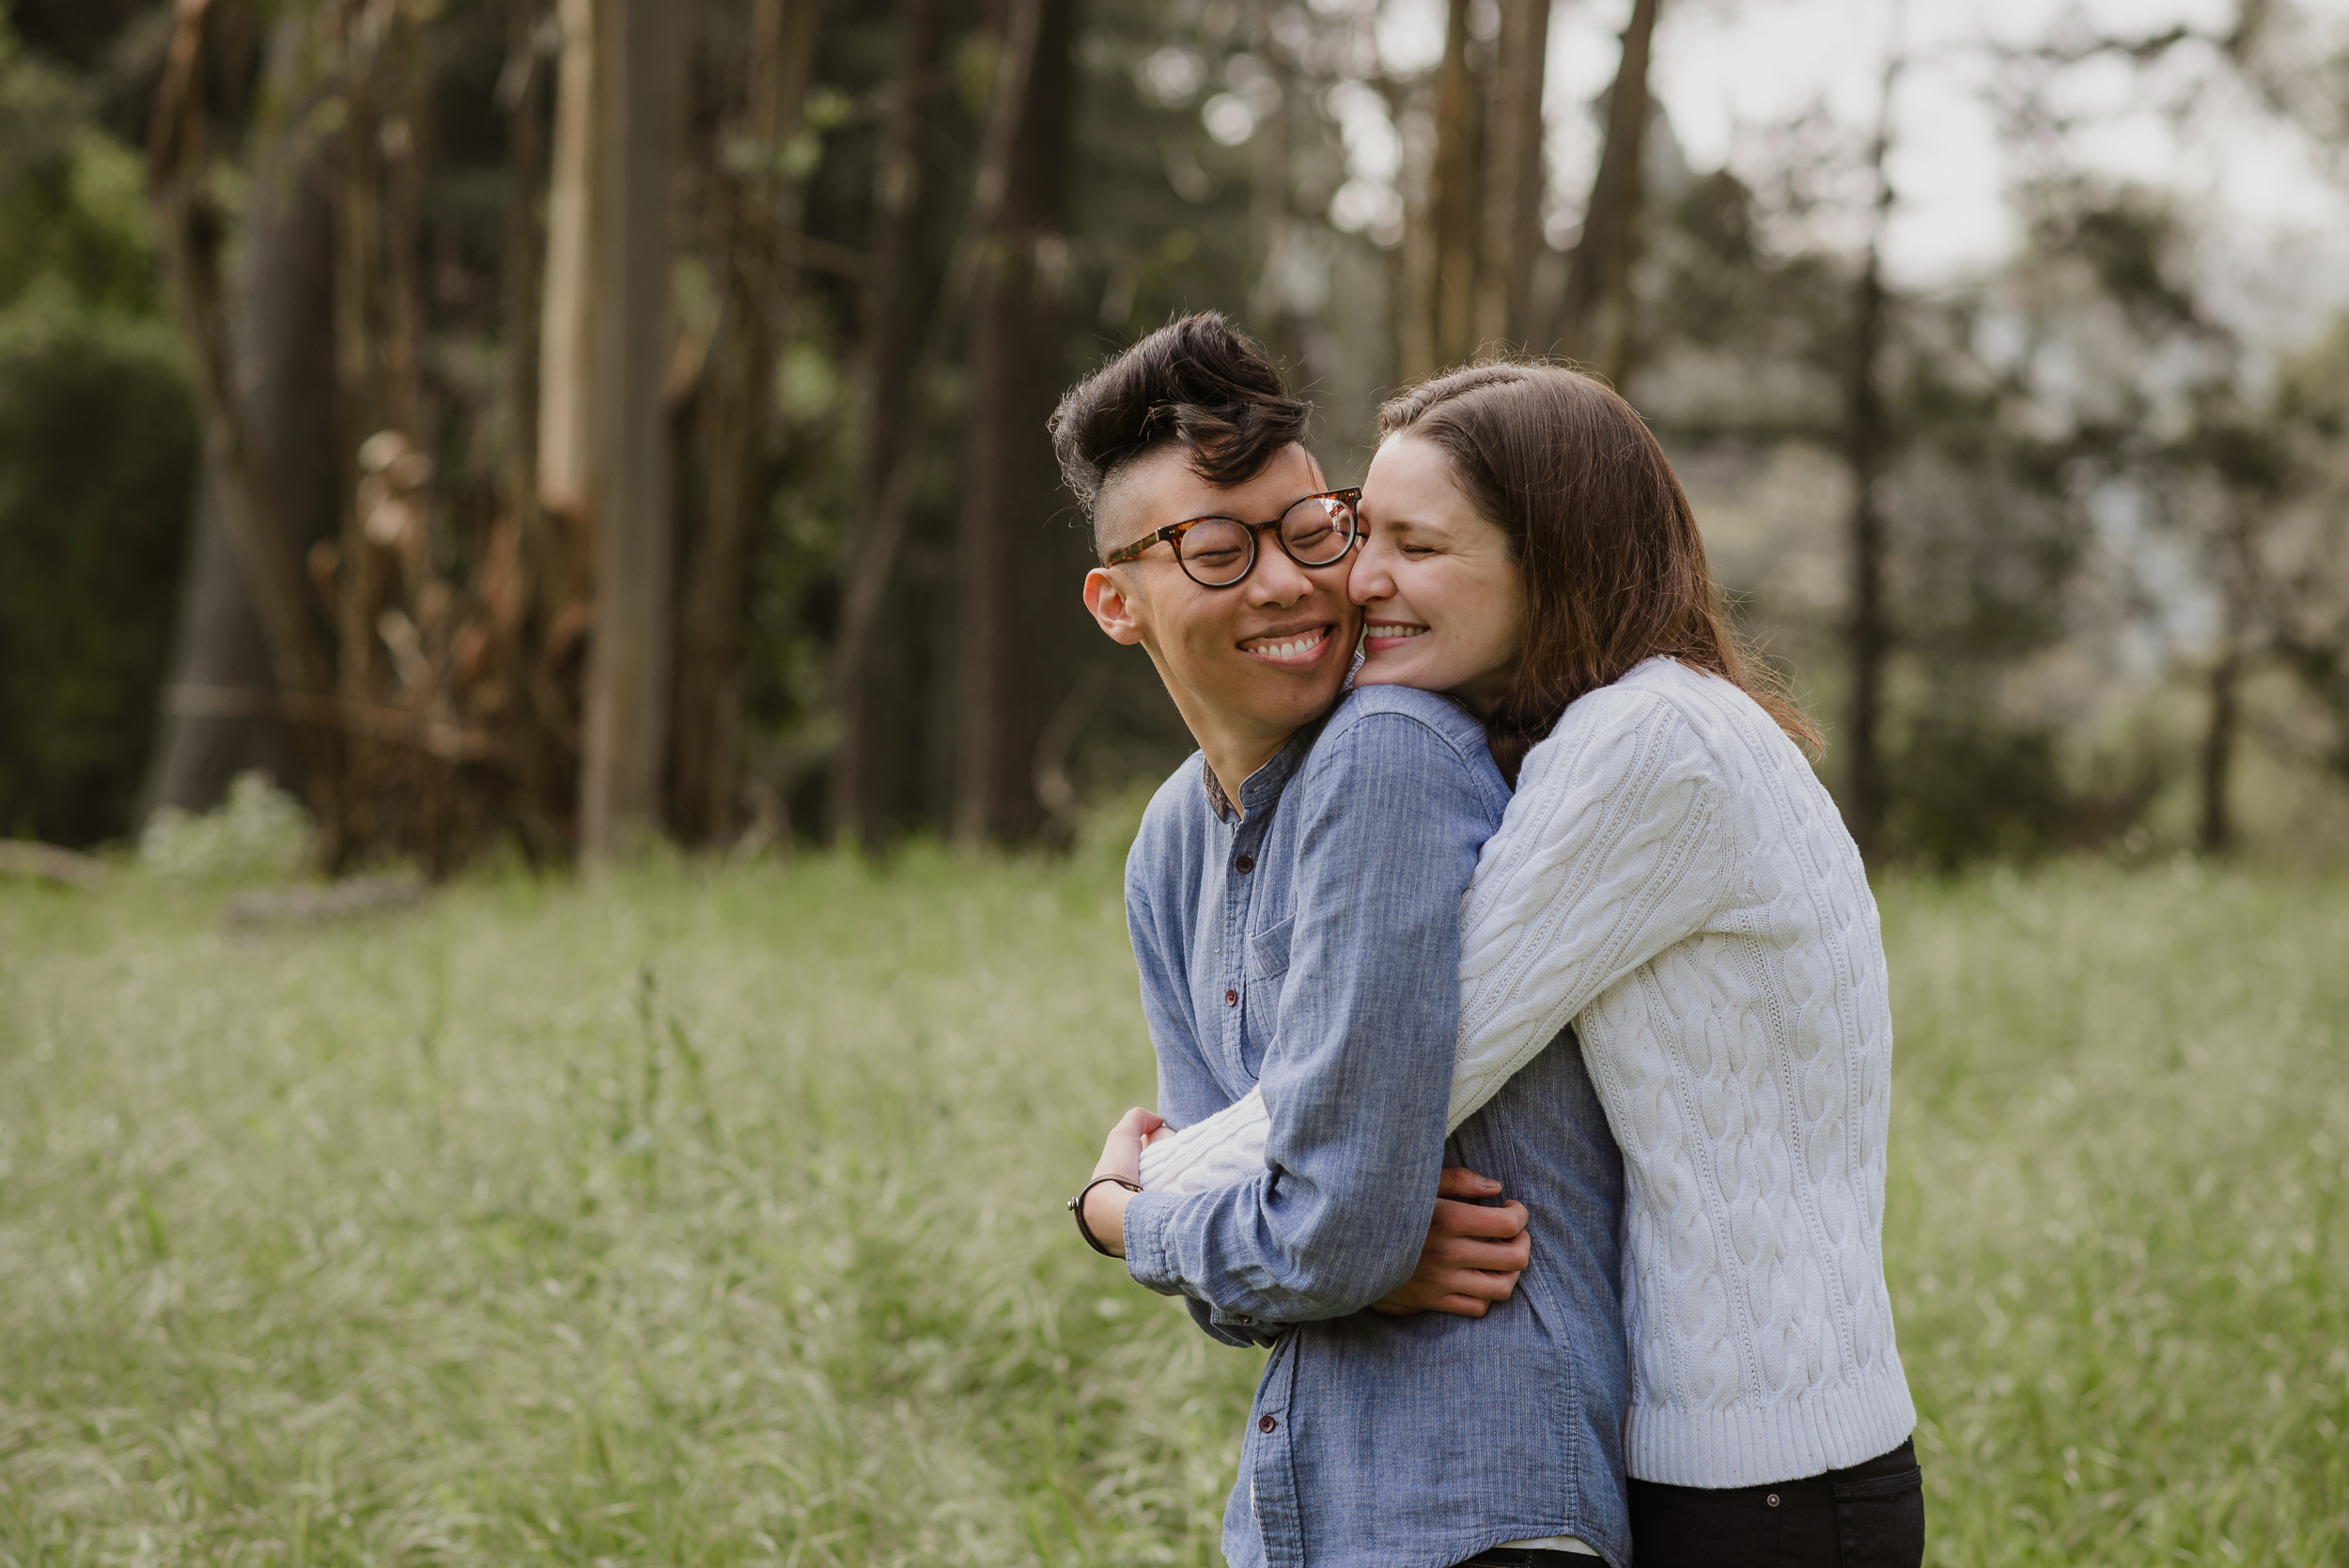 oakland-redwood-regional-park-engagement-session-vivianchen-111.jpg